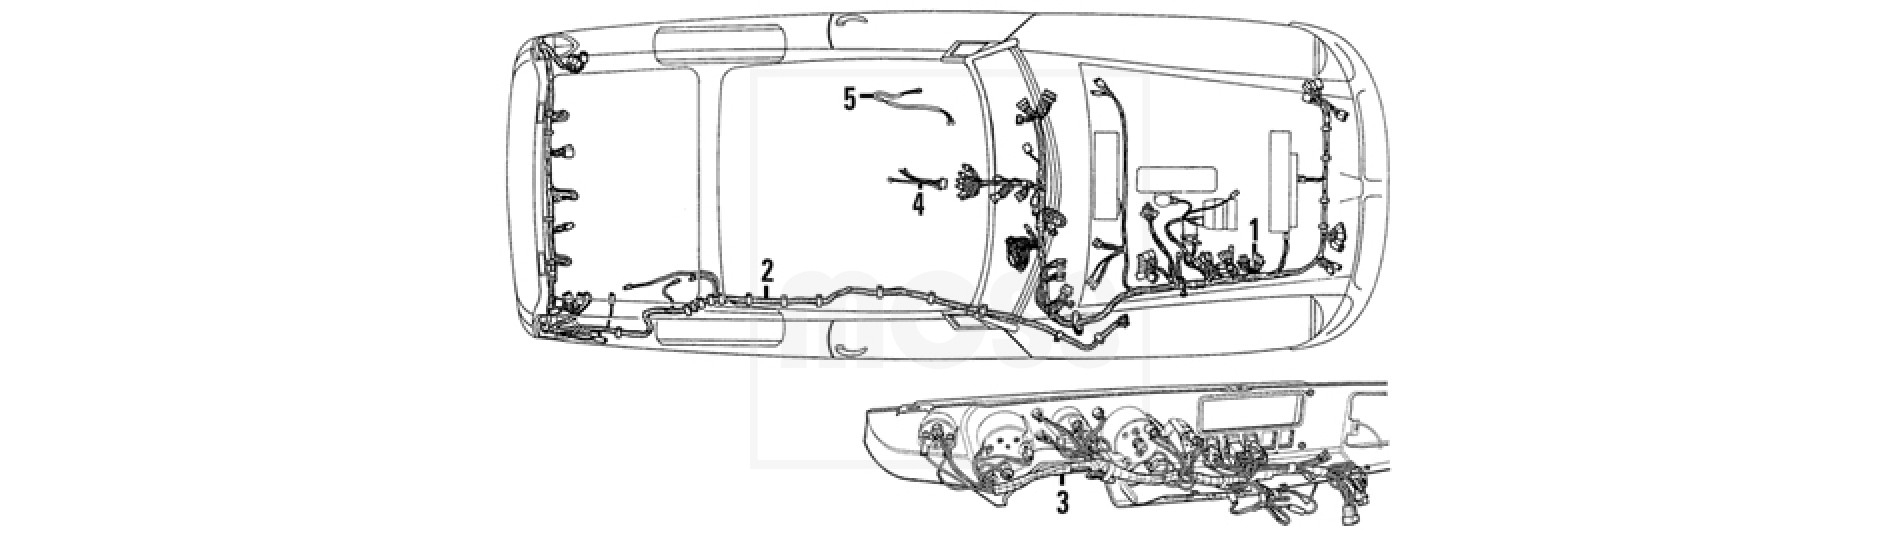 Mgb Wiring Harness - Today Wiring Diagram - Mgb Wiring Diagram